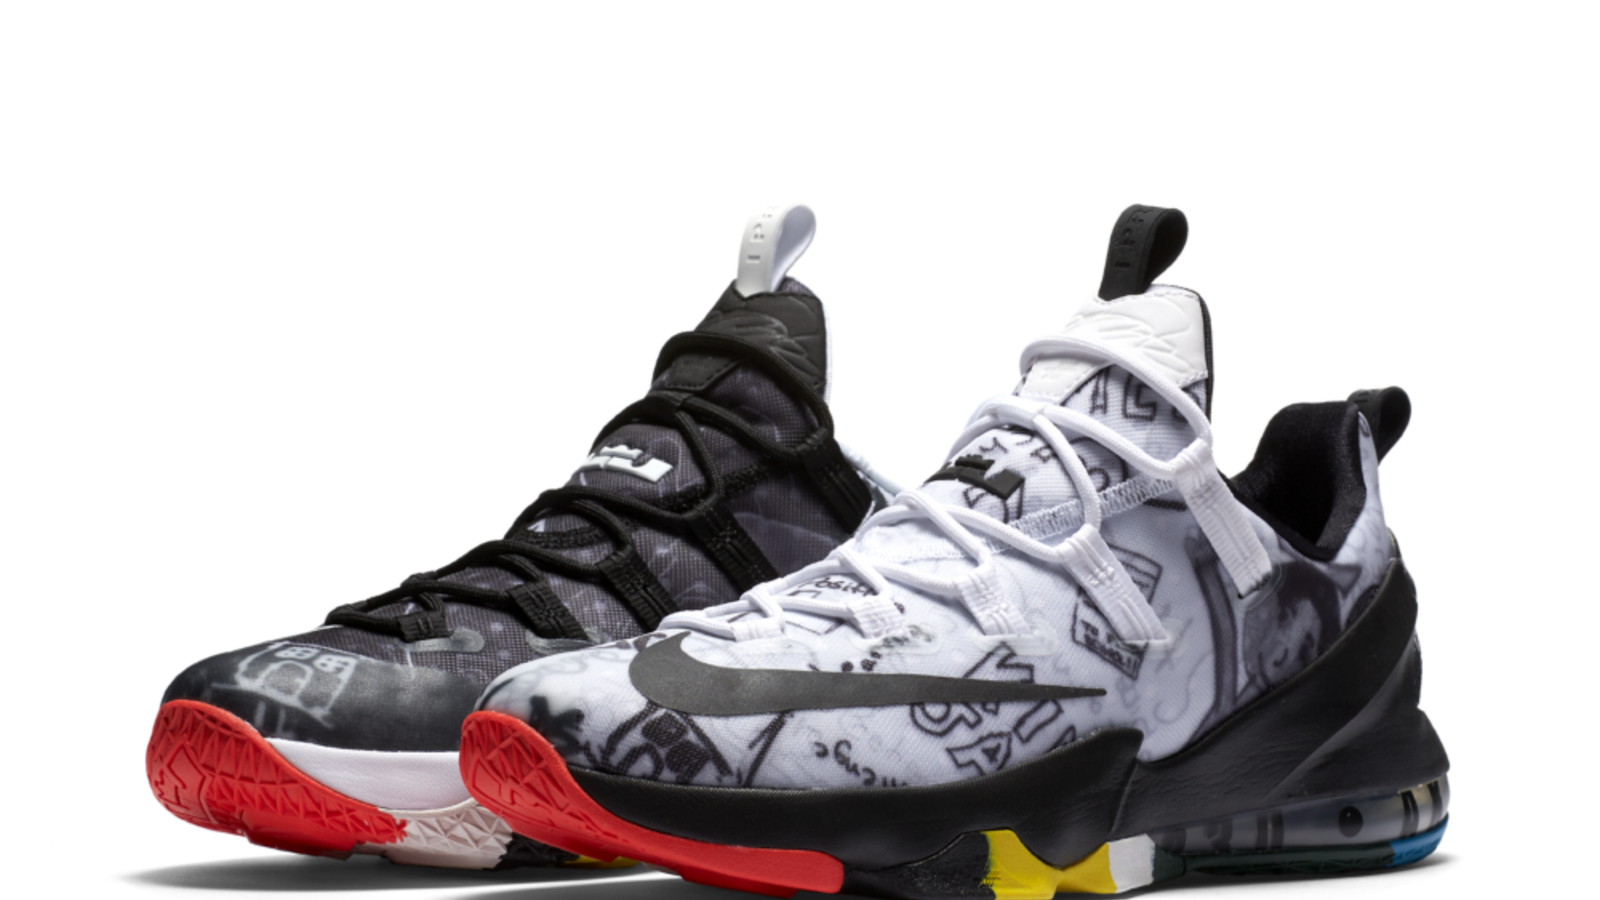 636071a81182 Hometown Pride  LEBRON 13 Low